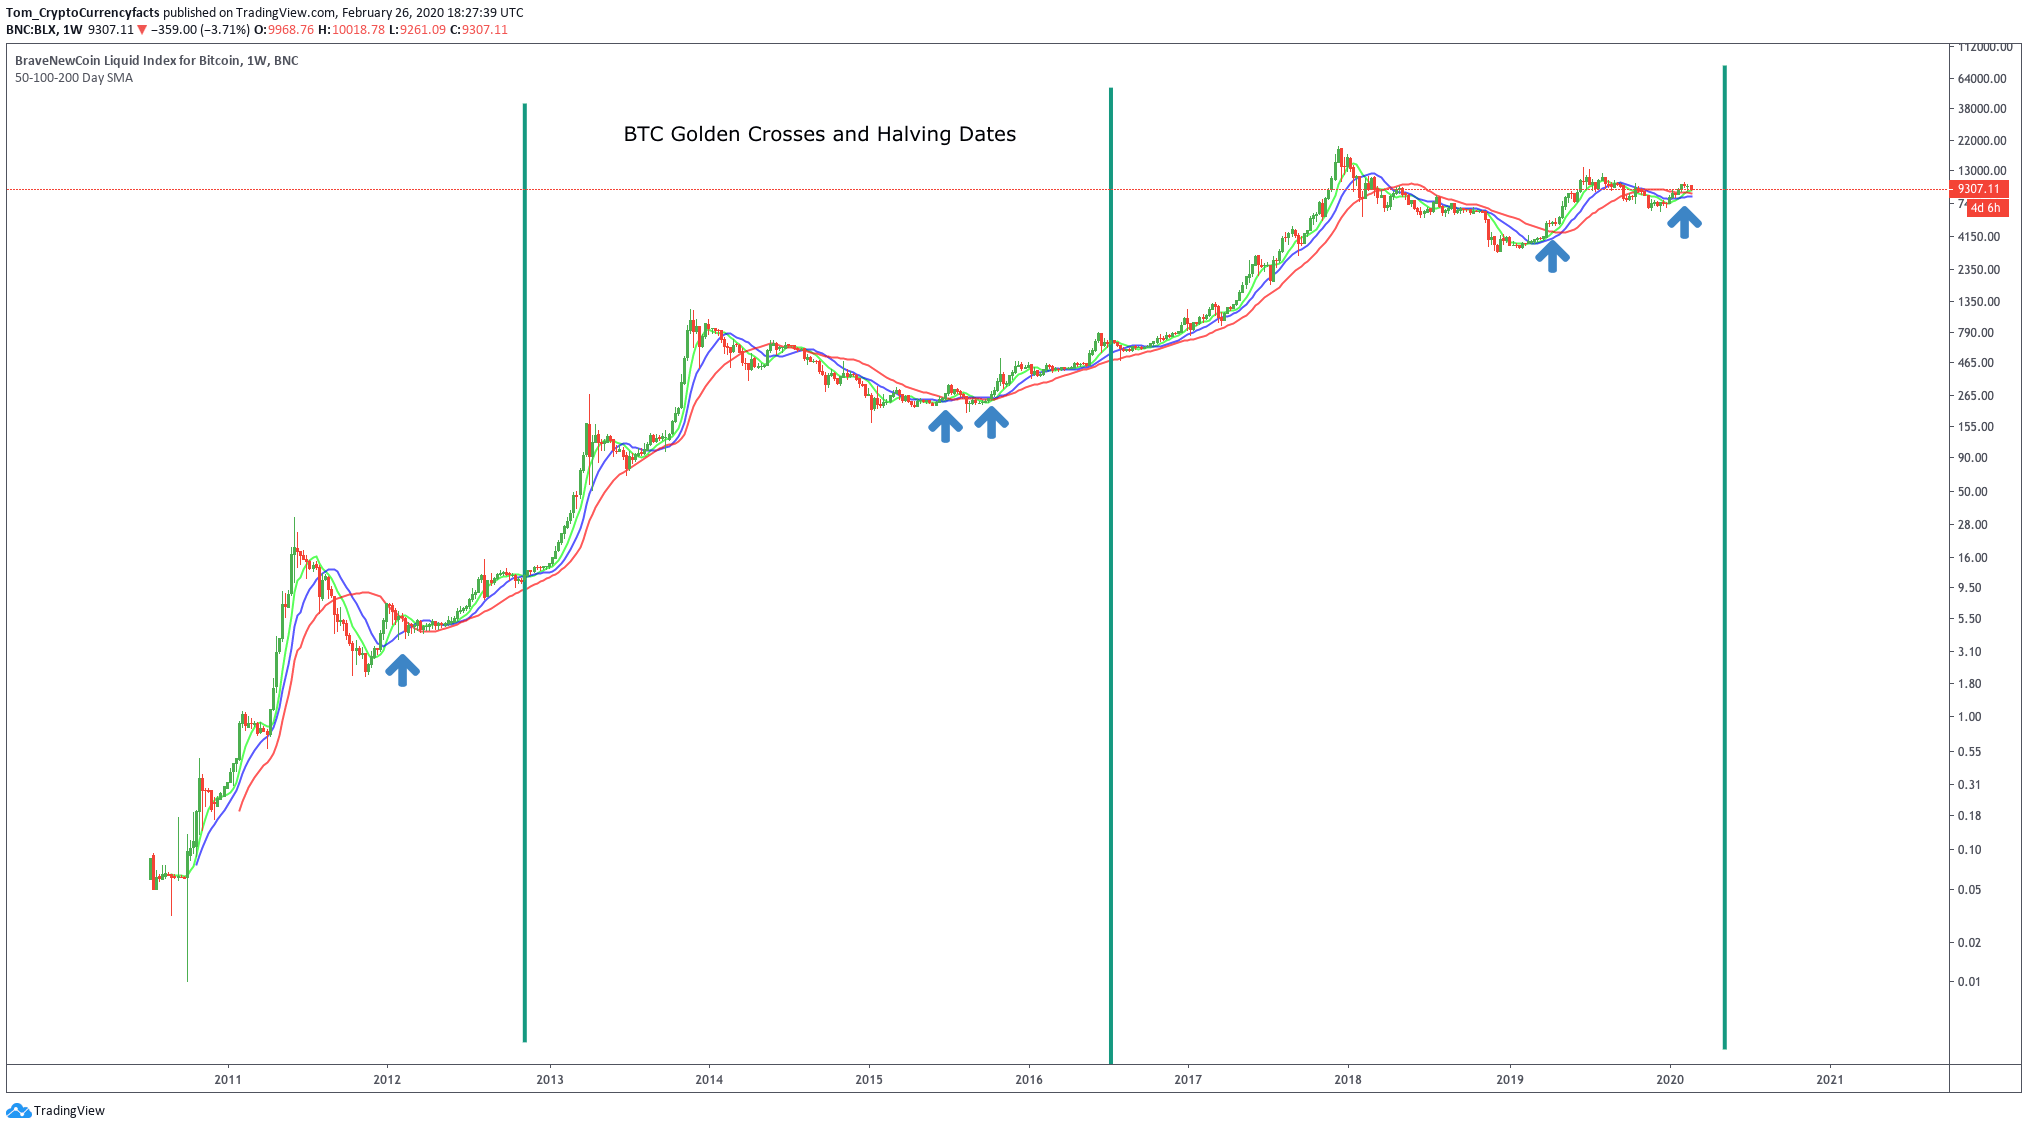 BTC Golden Crosses and Halvings